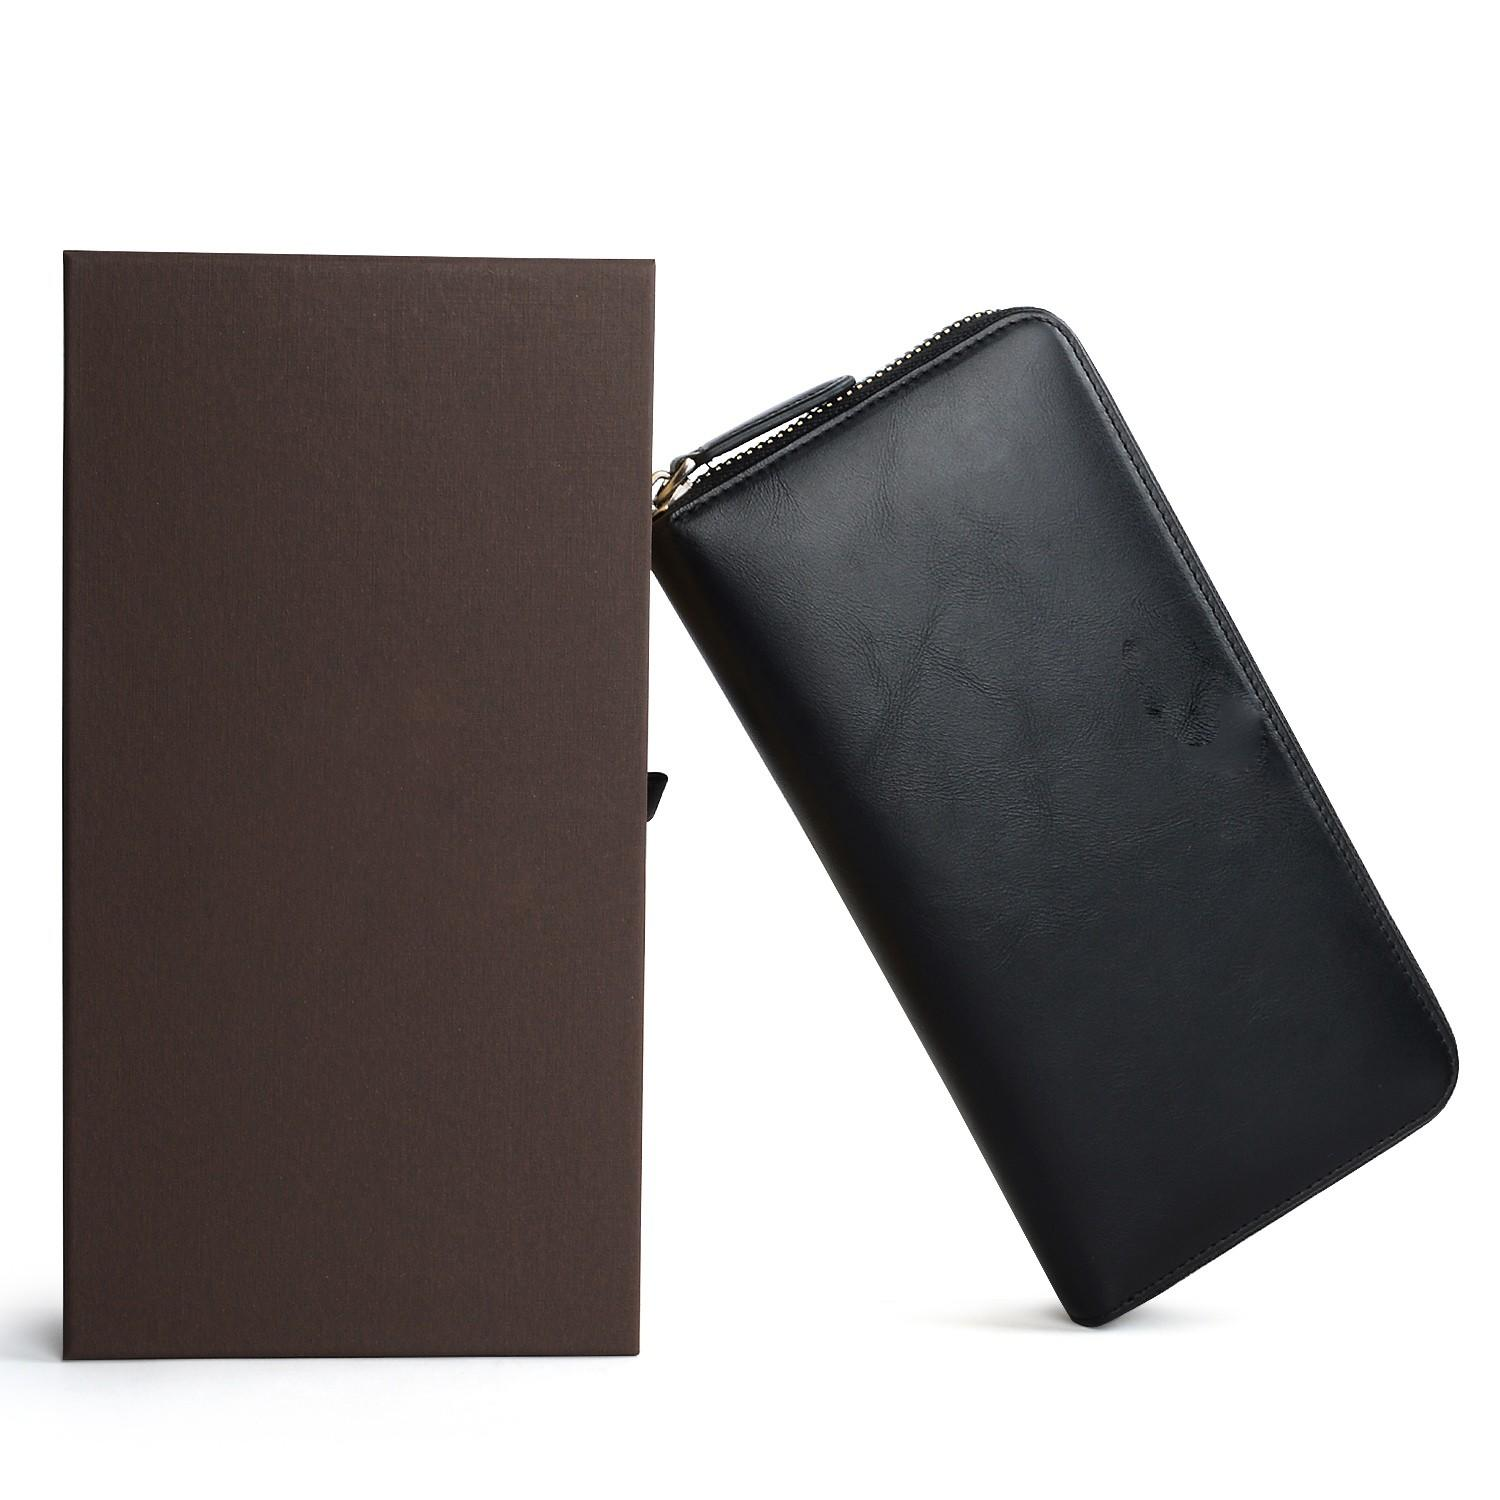 AIVI reliable leather card holder wallet factory for iphone XS